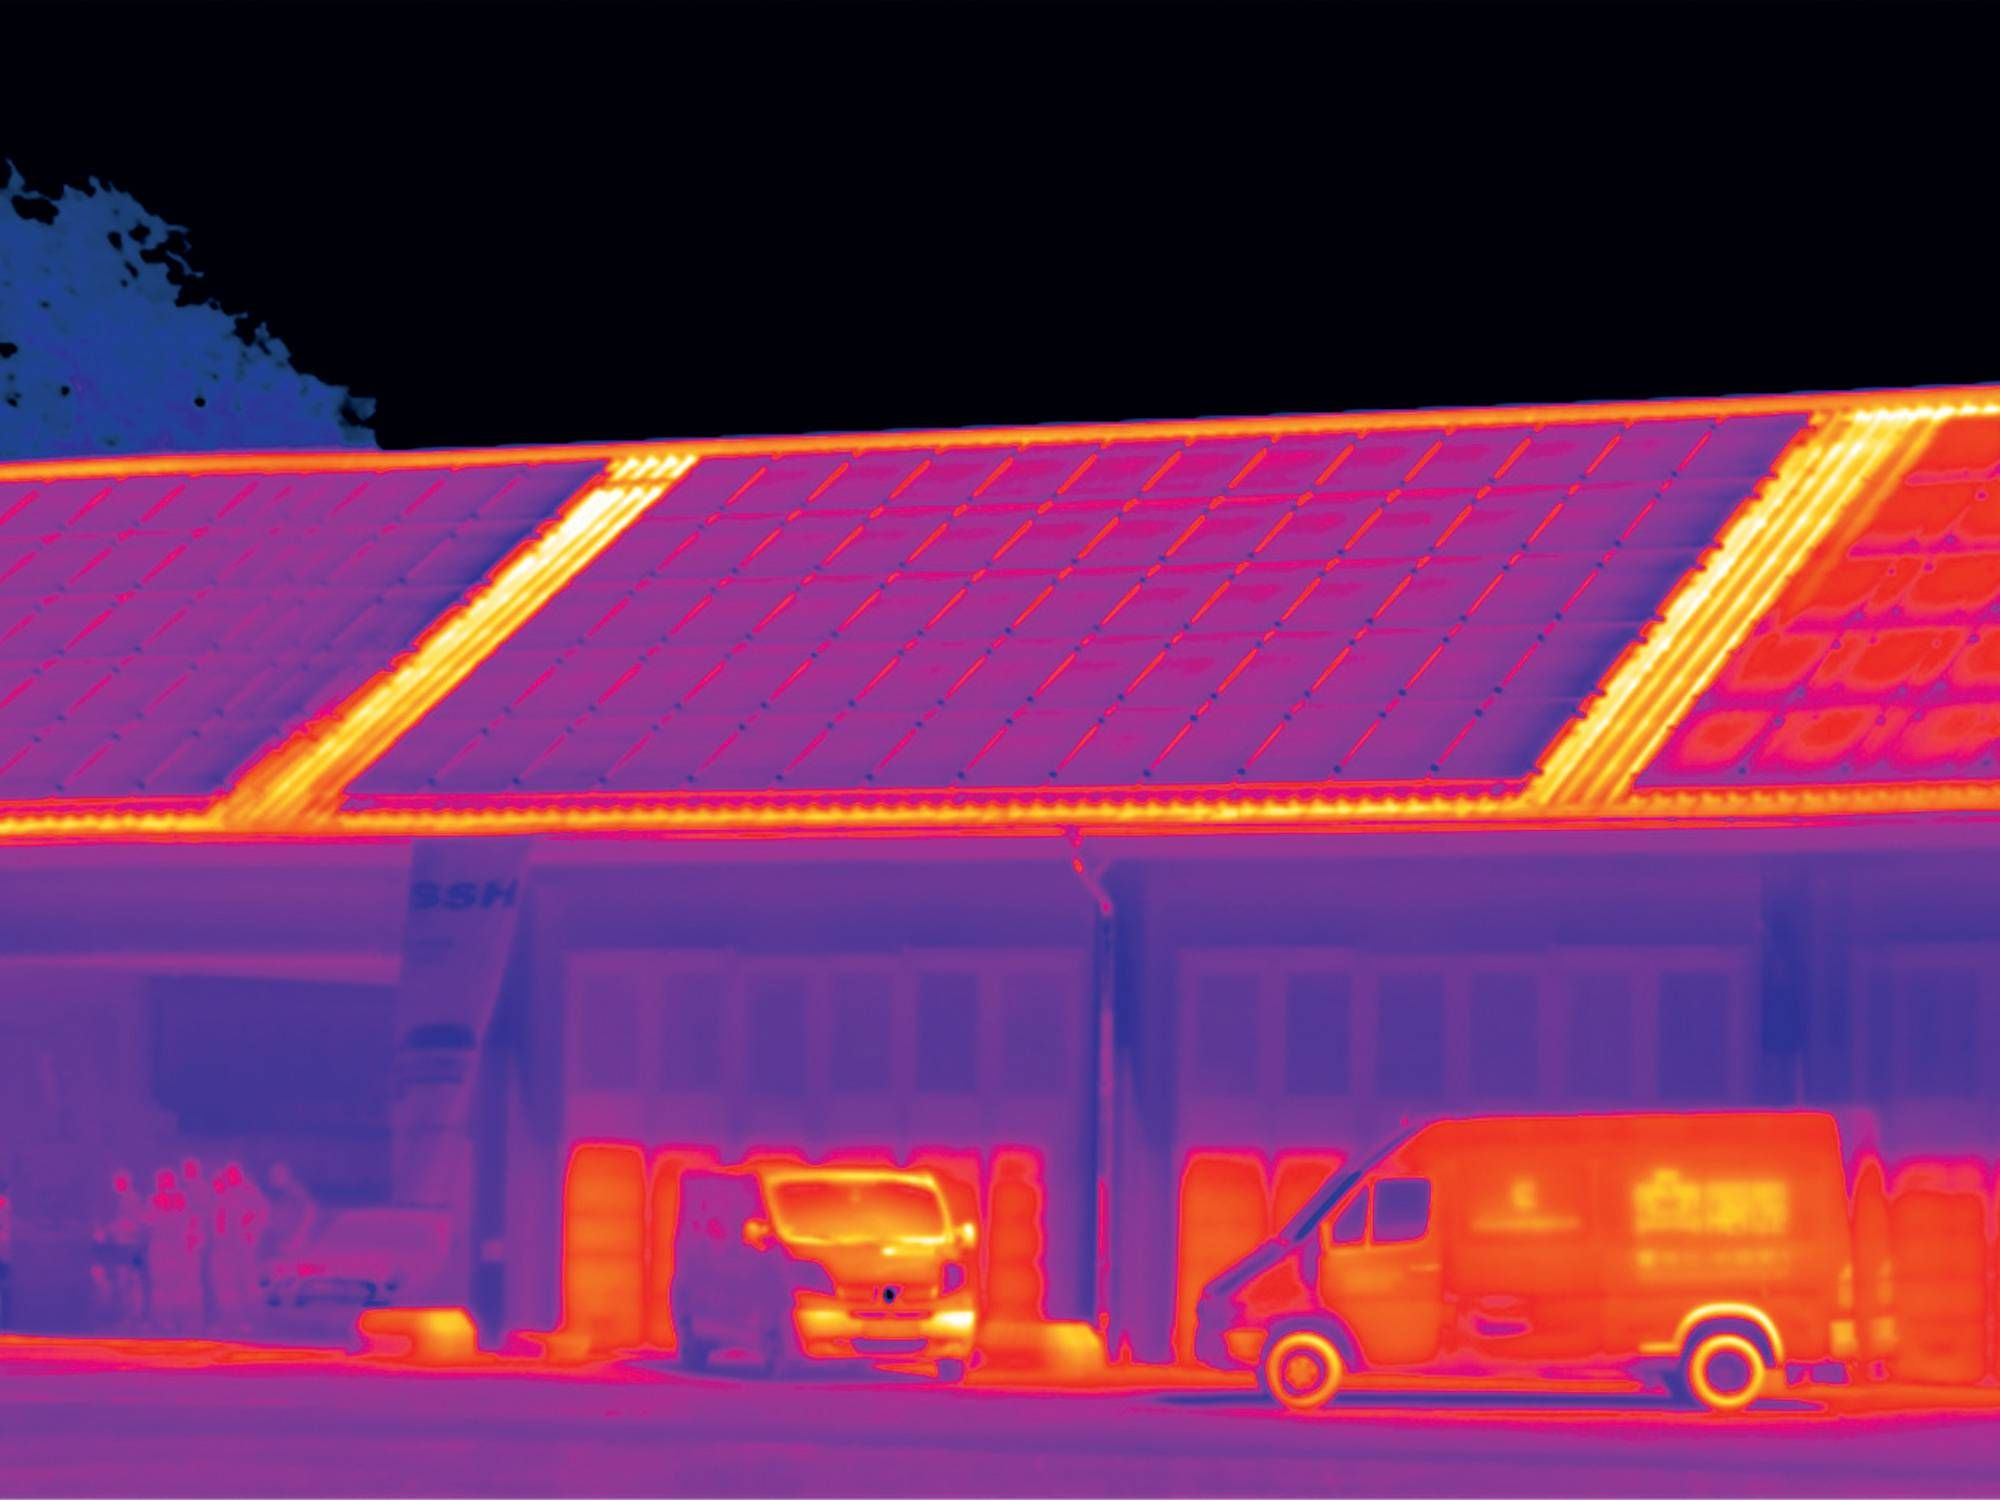 Thermal image of photovoltaic plant on roof